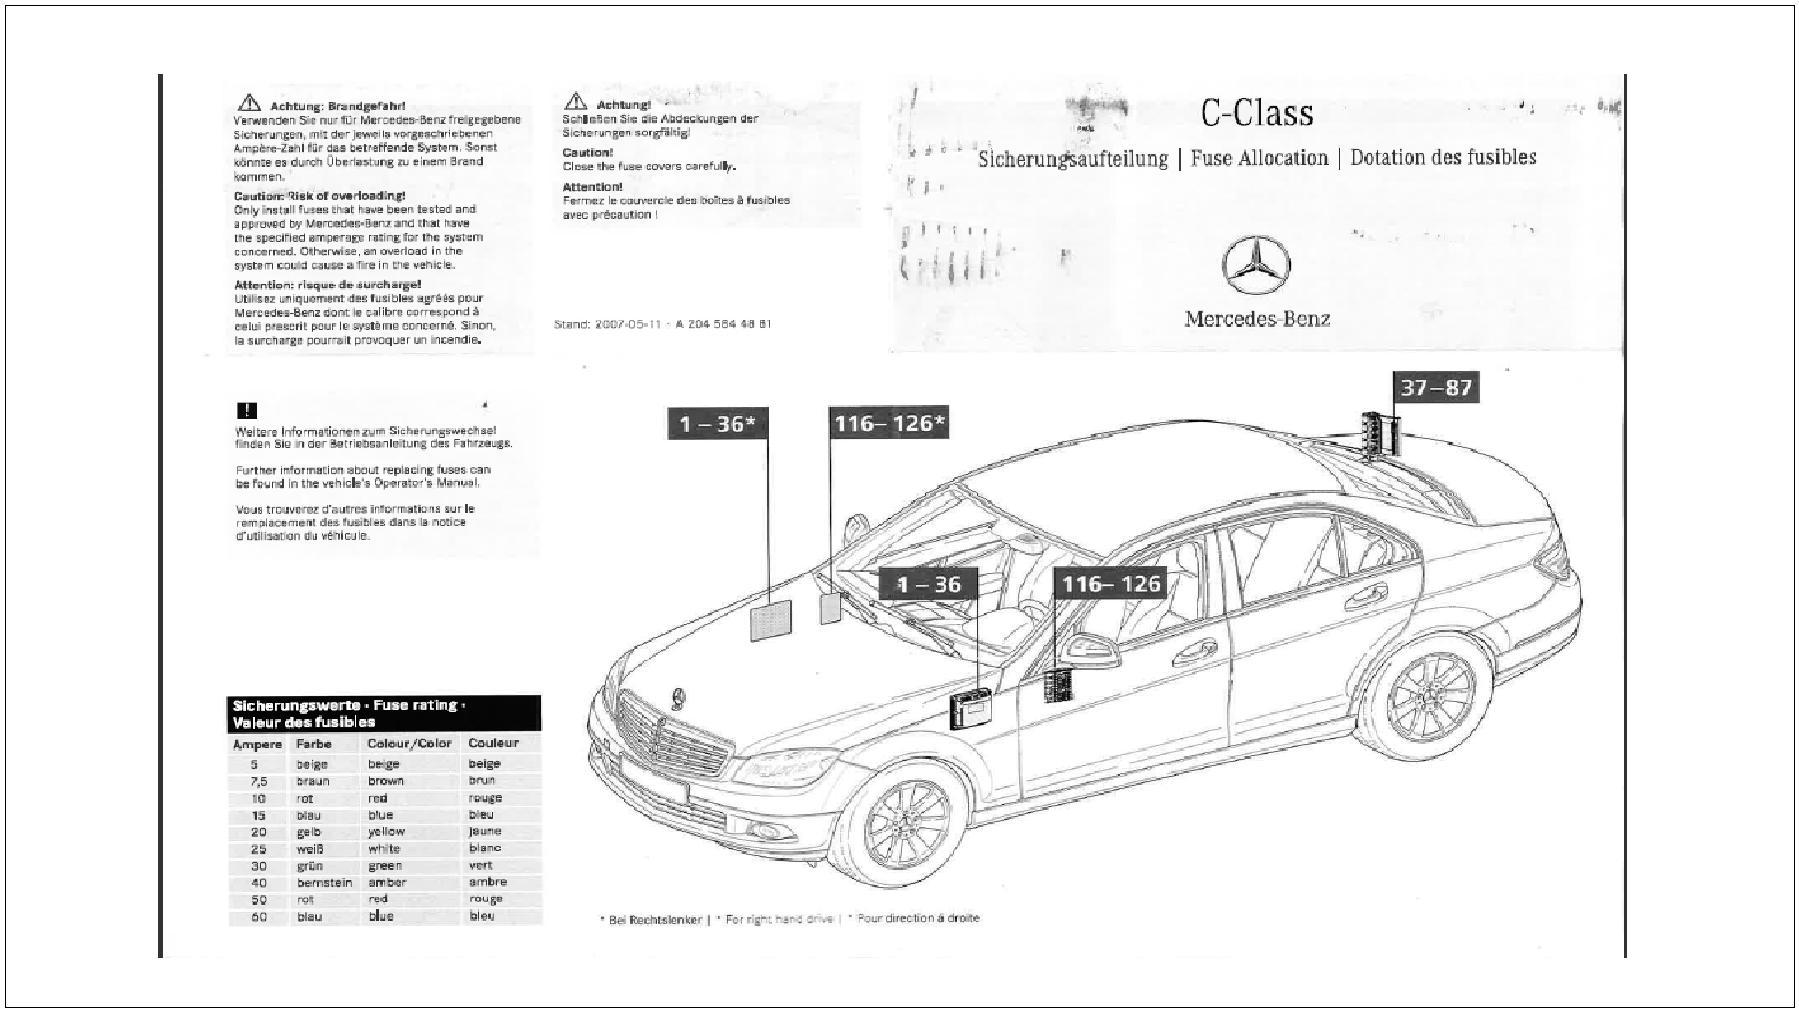 E Type Fuse Box Mercedes Benz C Class W204 Diagrams And Commonly Blown Fuses Allocation Chart Page 1